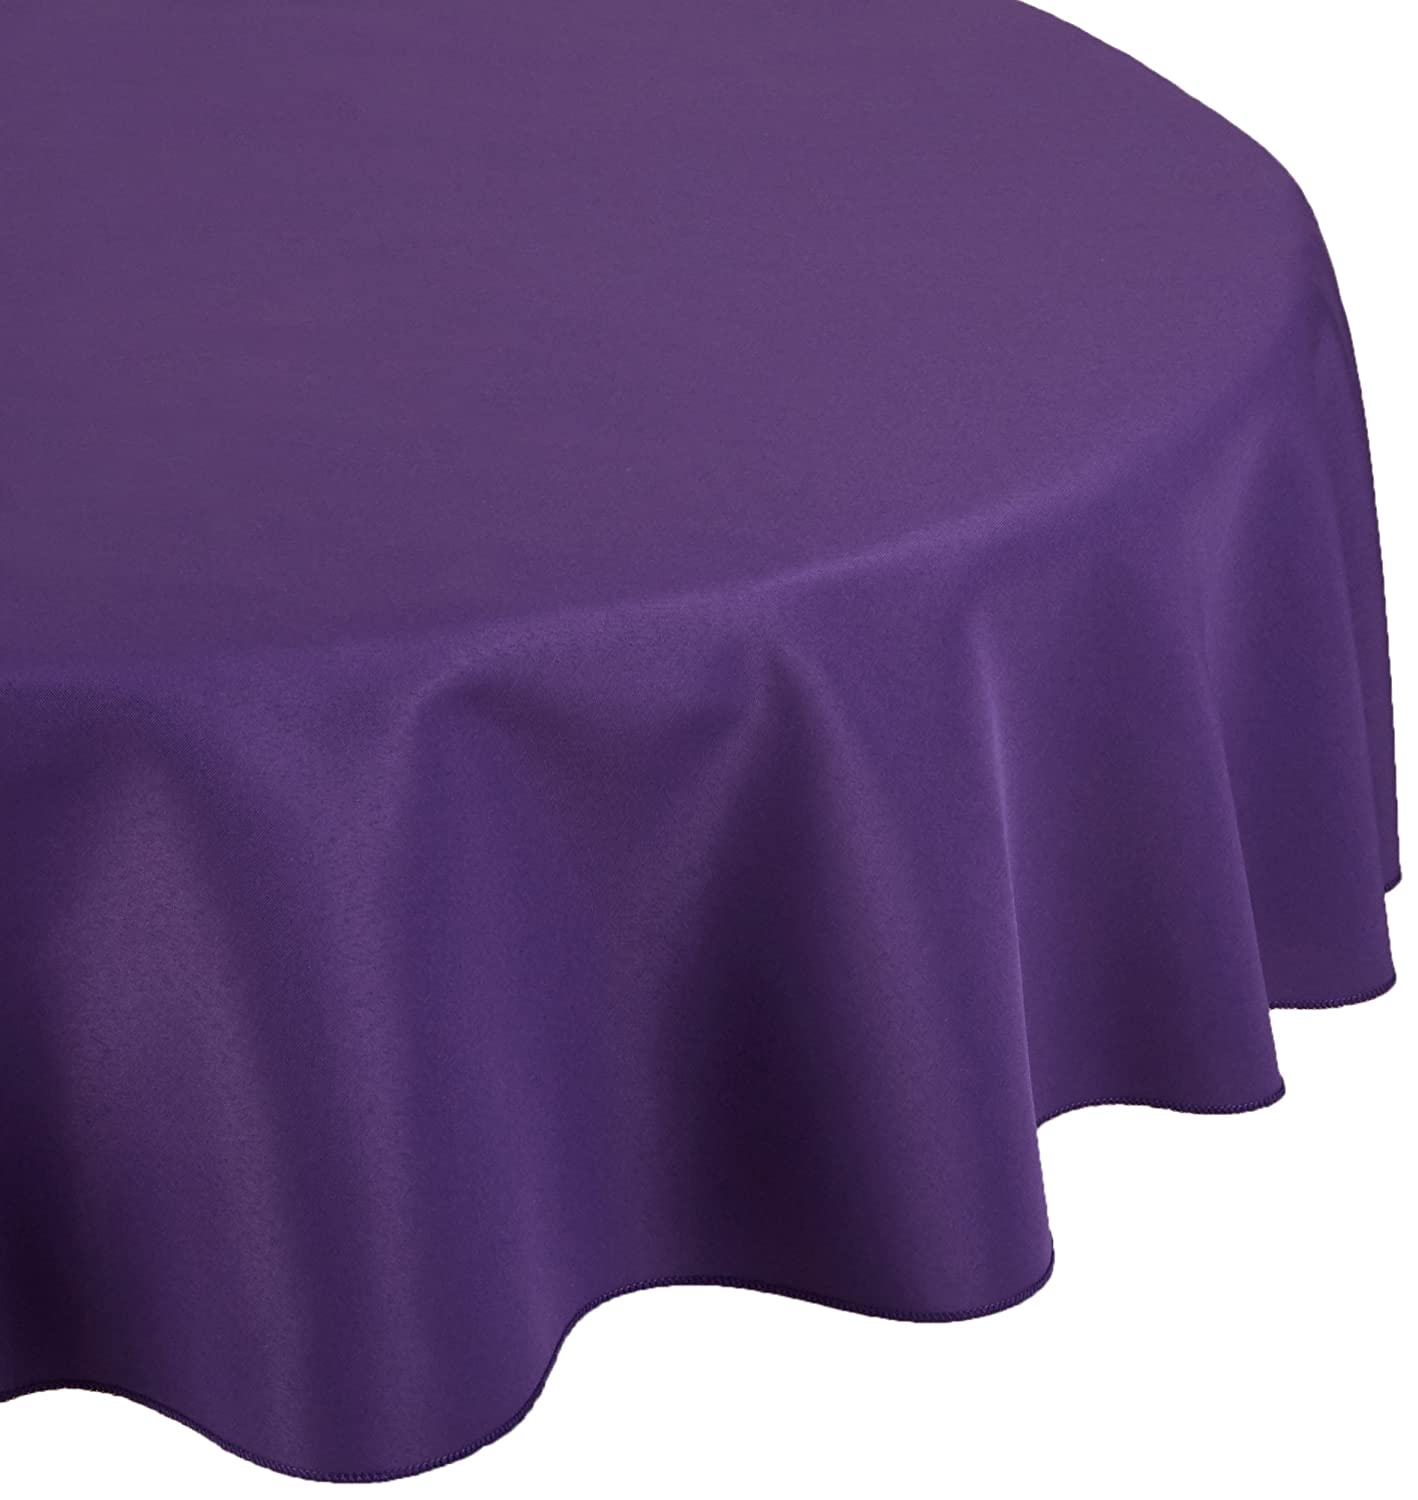 96 inch round tablecloth - Amazon Com Linentablecloth 70 Inch Round Polyester Tablecloth Purple Home Kitchen